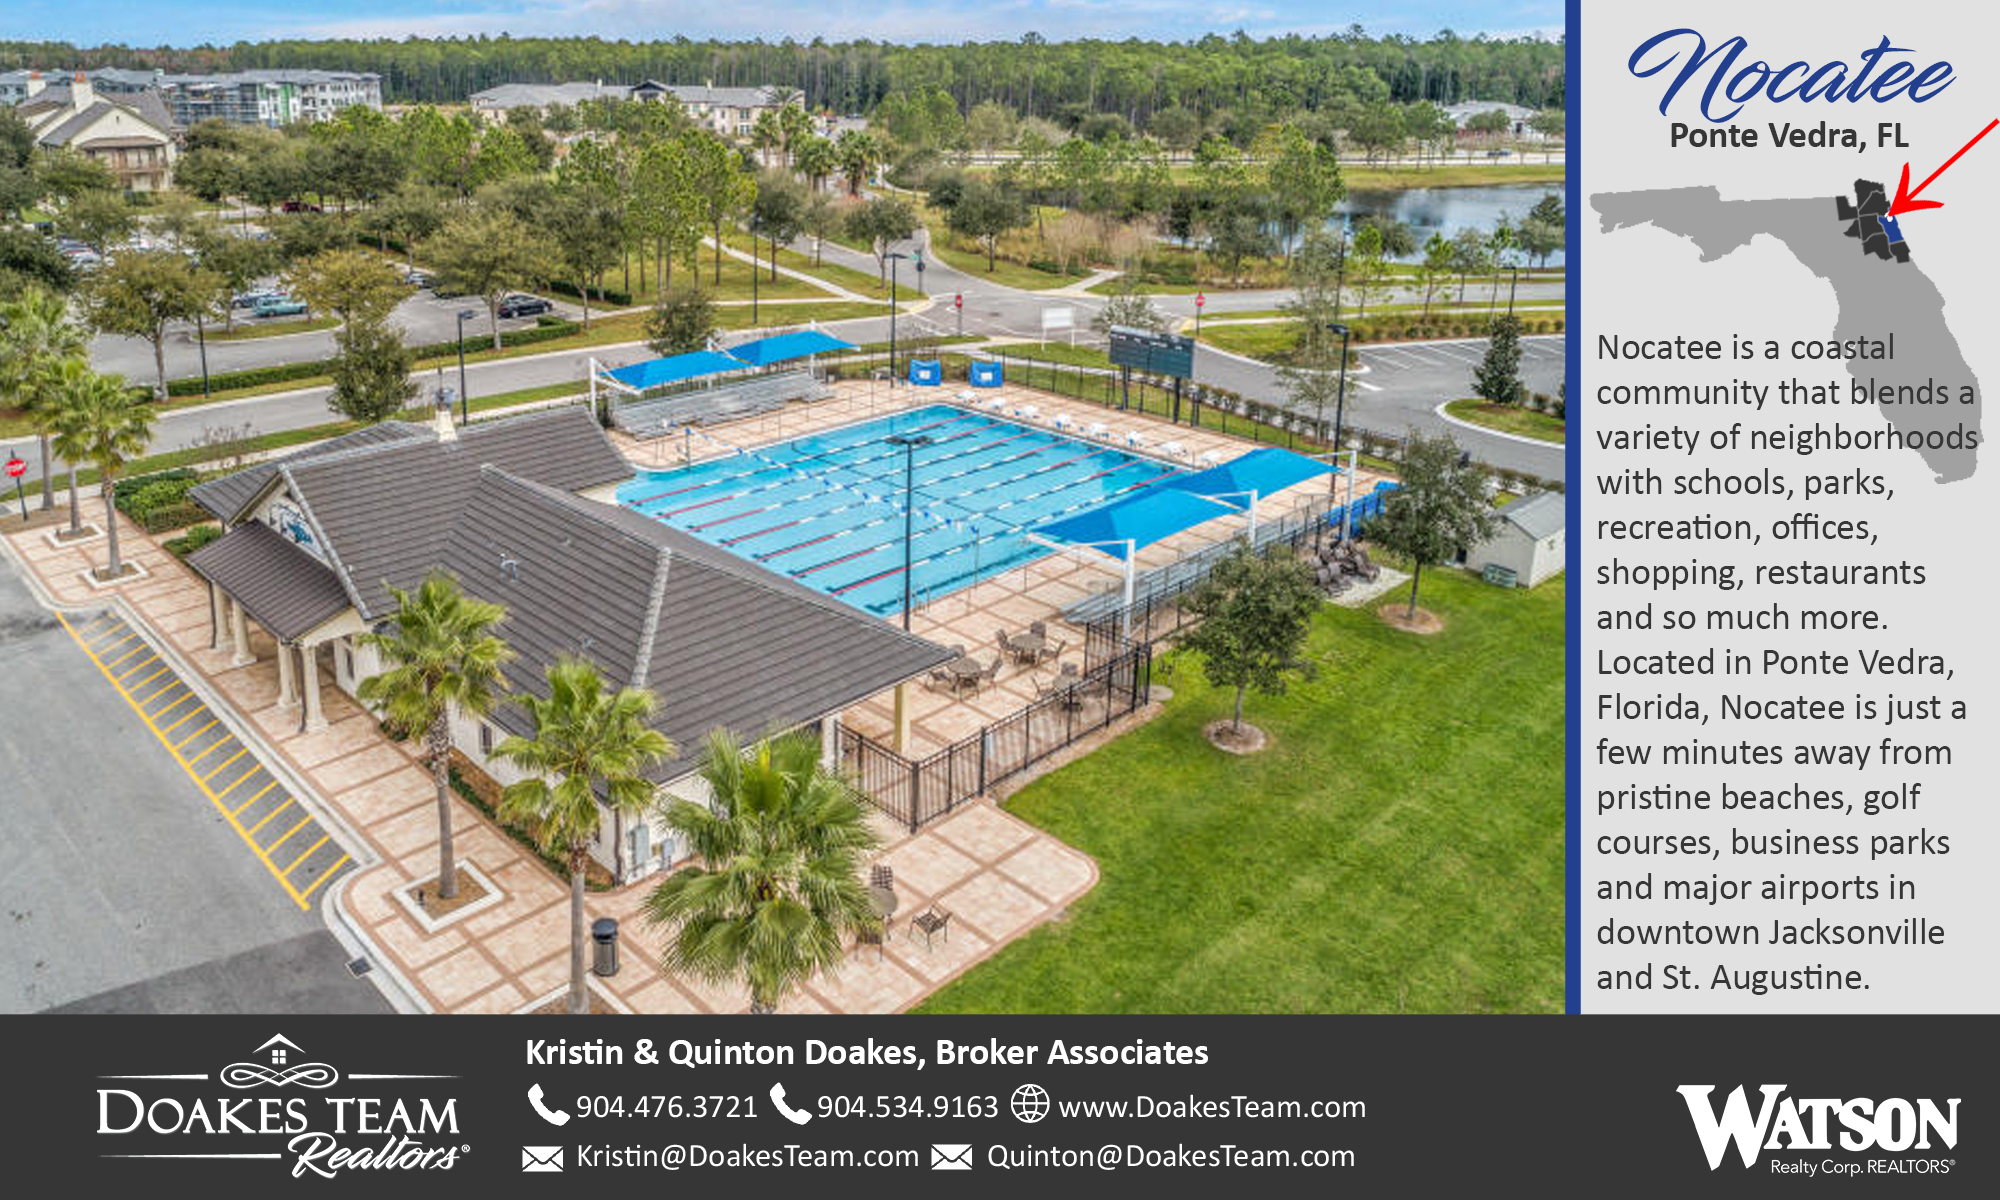 Homes for Sale in Nocatee, FL 32081 Florida, The